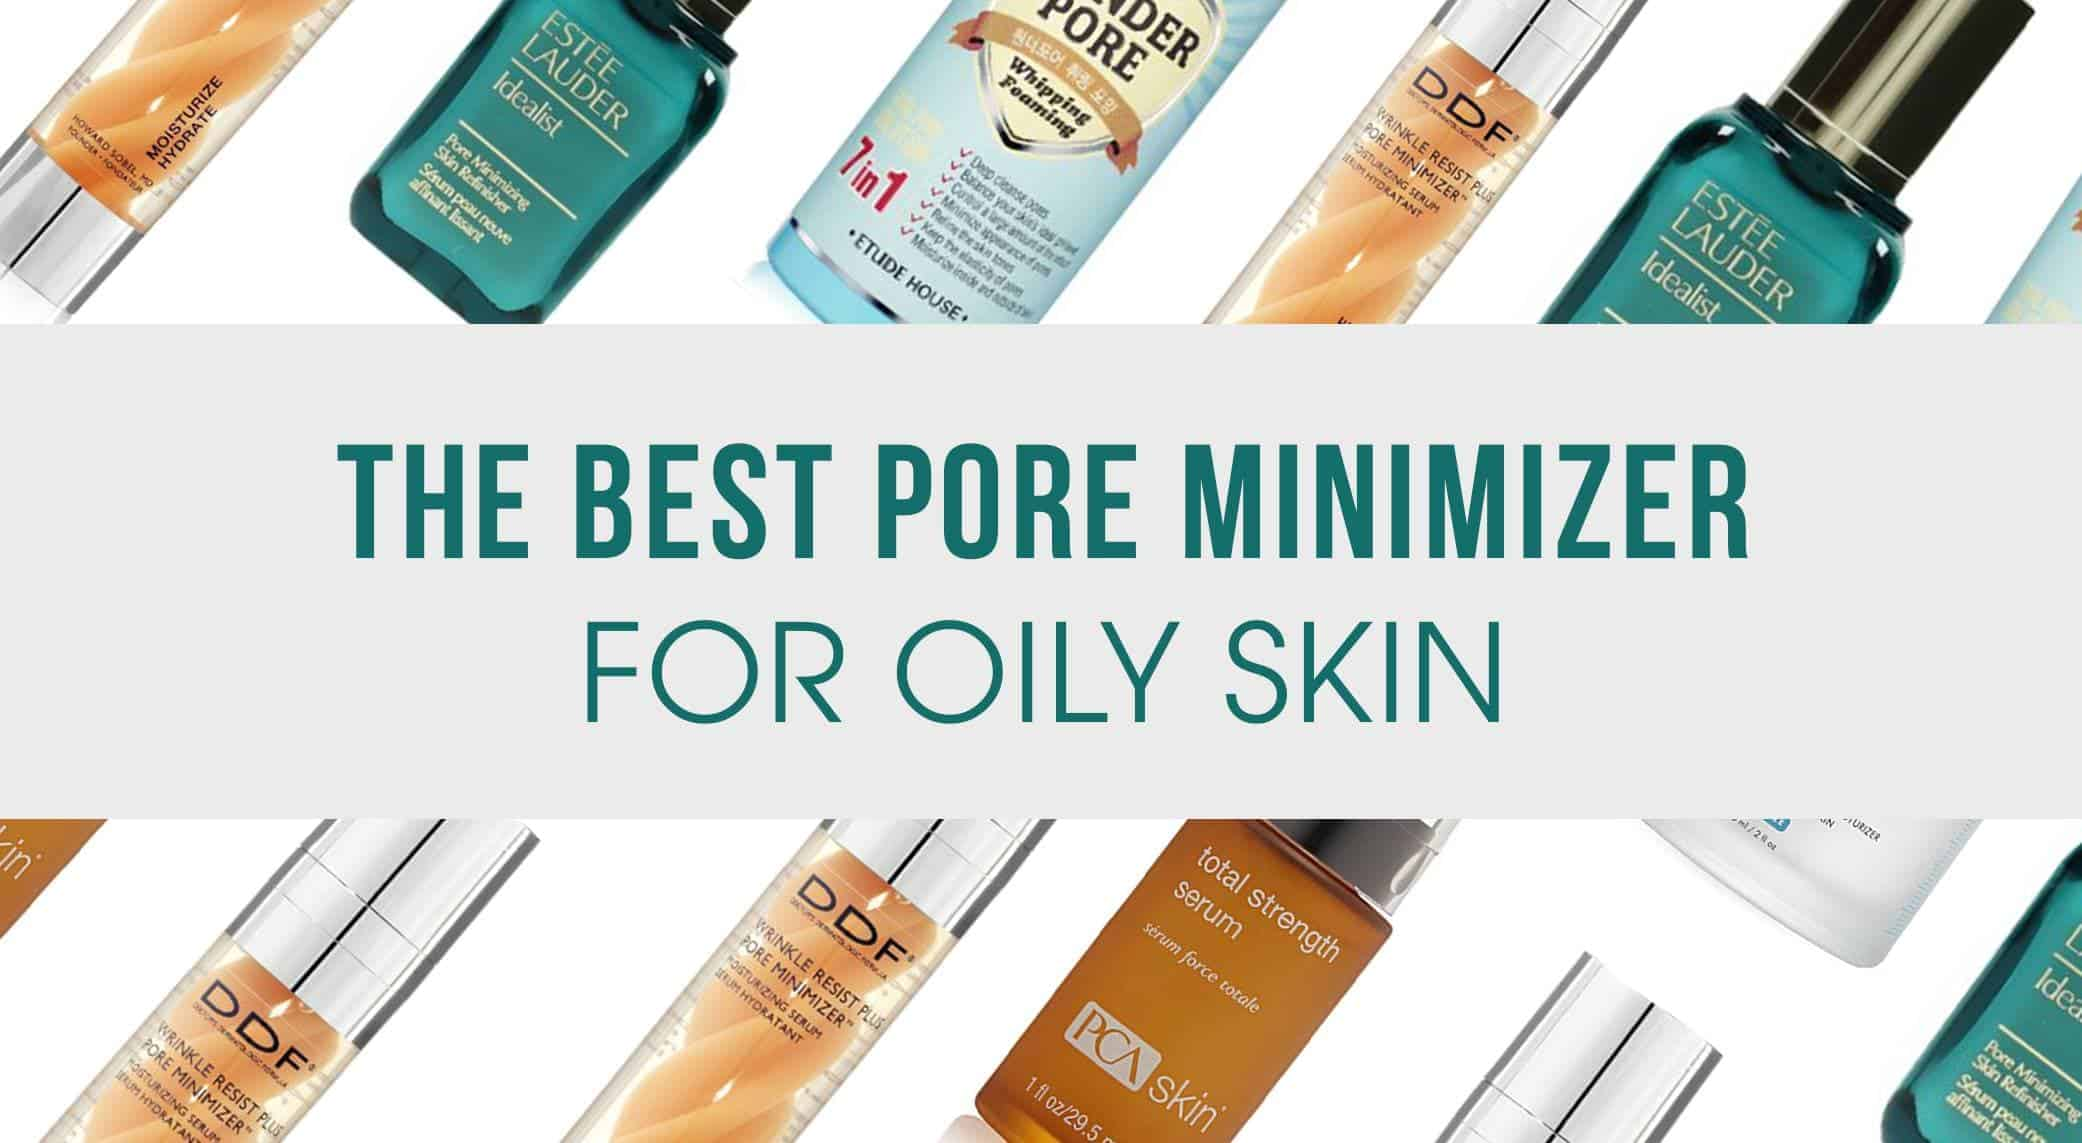 Best Pore Minimizer For Oily Skin August 2020 Reviews And Top Picks